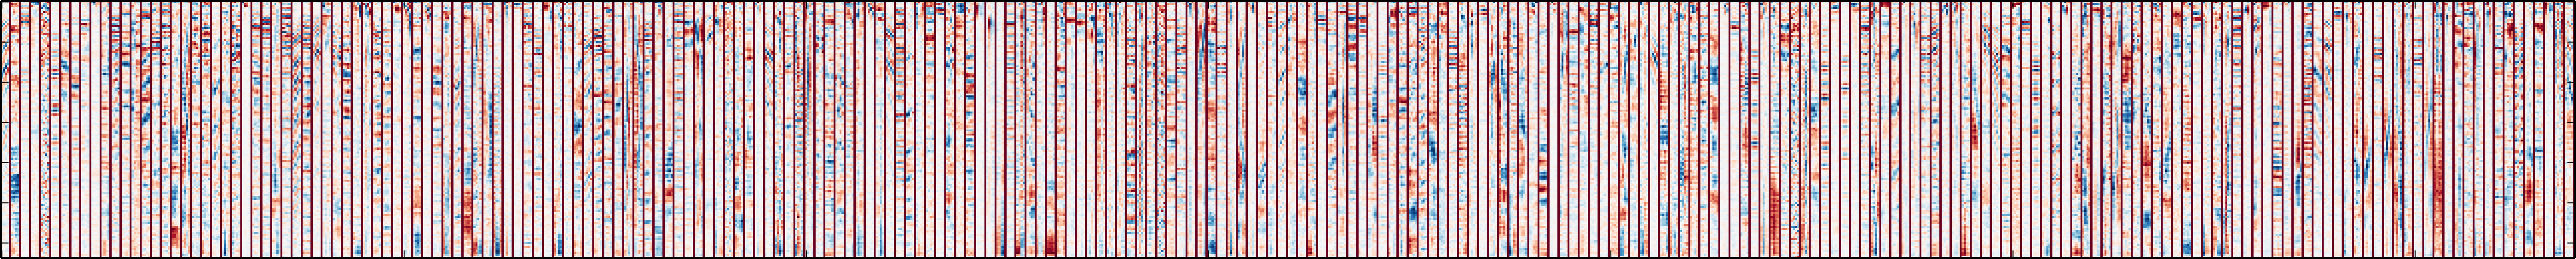 From this representation, we can see that a lot of the filters pick up harmonic content, which manifests itself as parallel red and blue bands at different frequencies. Sometimes, these bands are are slanted up or down, indicating the presence of rising and falling pitches. It turns out that these filters tend to detect human voices.